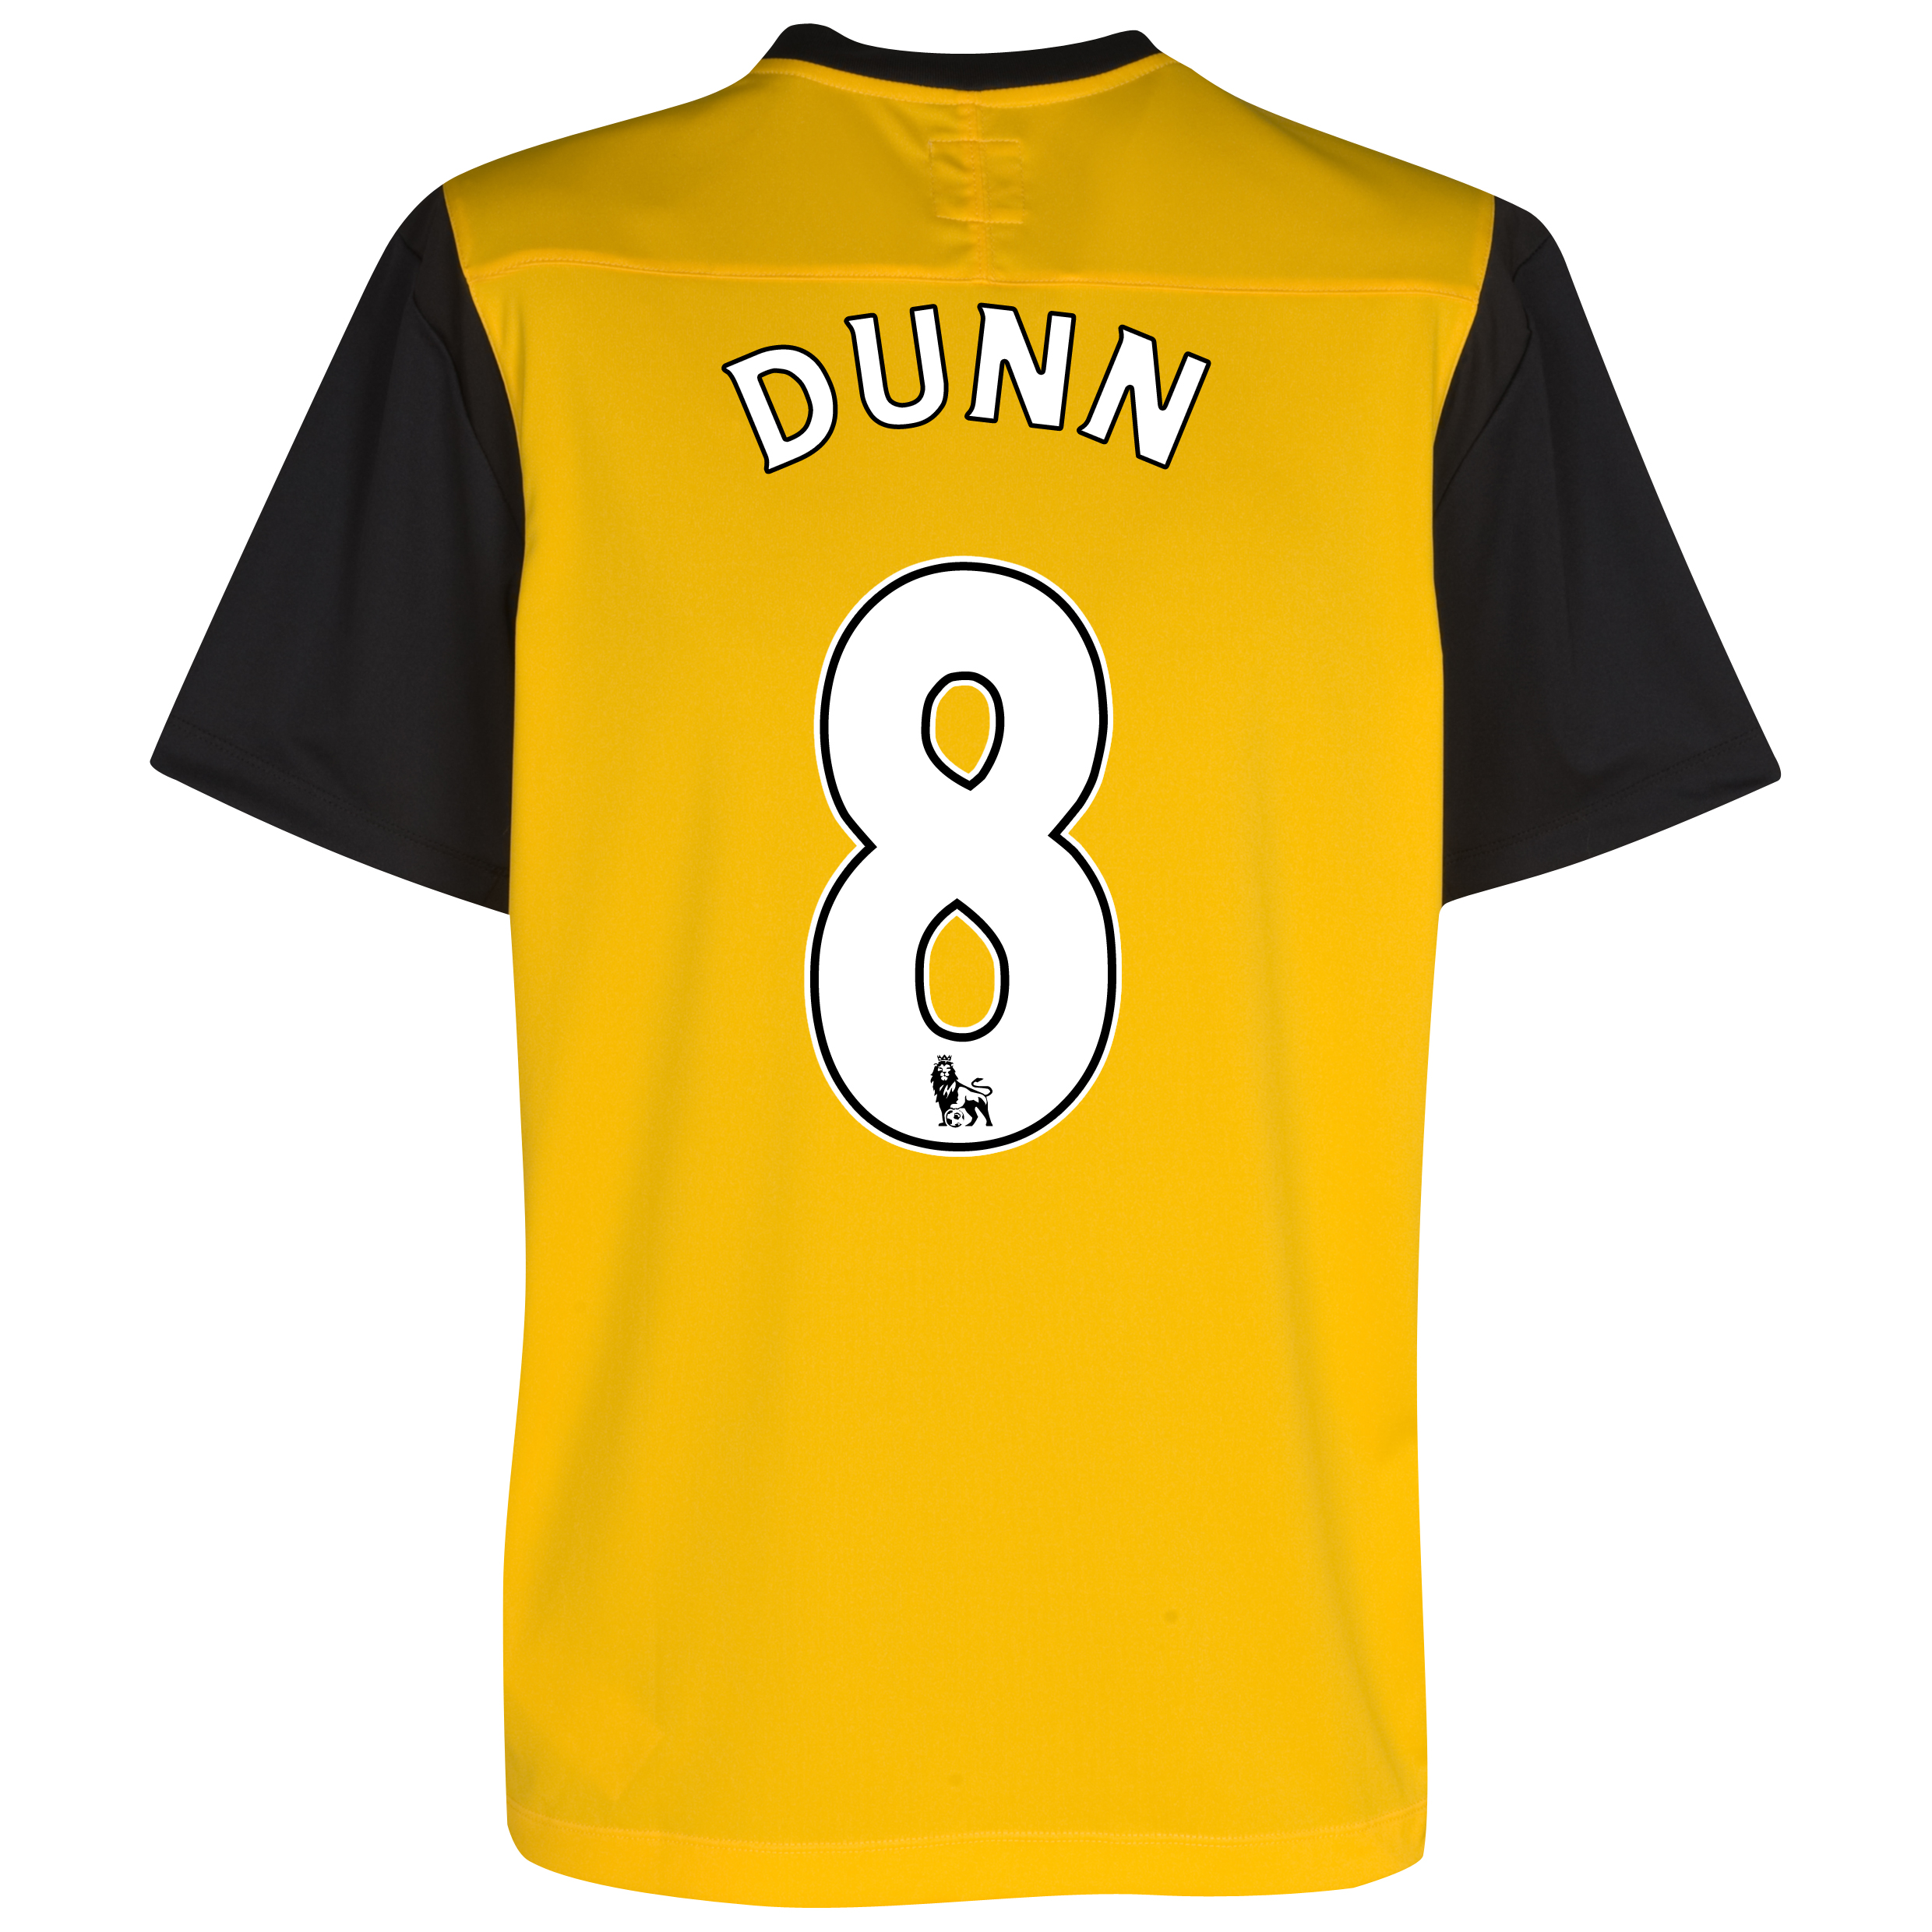 Blackburn Rovers Away Shirt 2011/12 - Kids with Dunn 8 printing